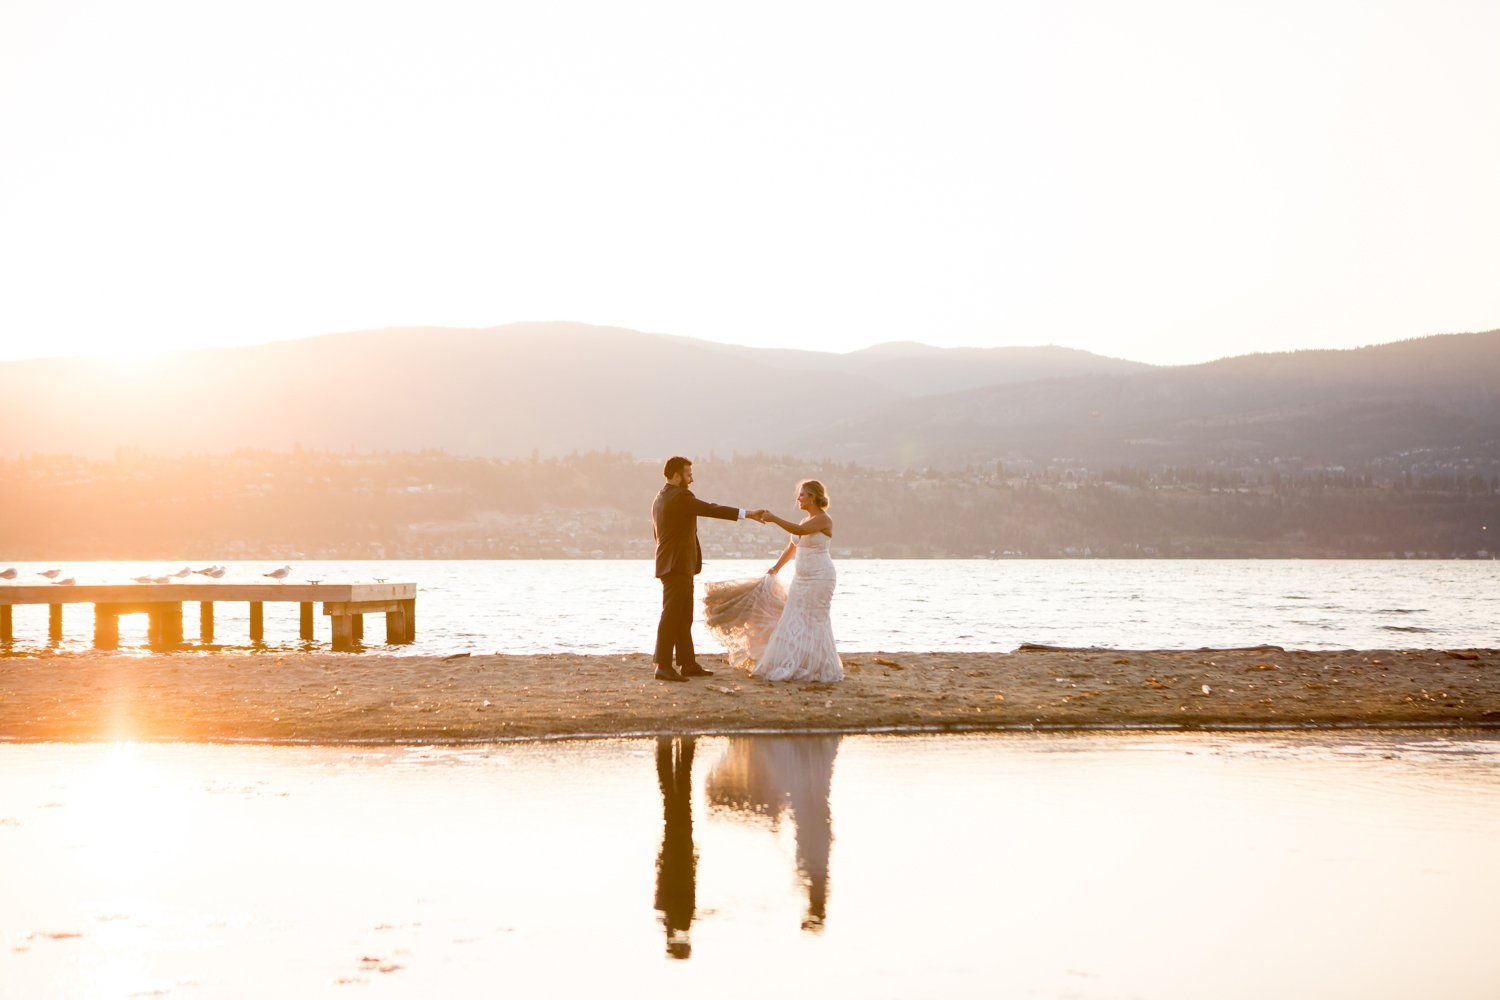 A bride and groom dancing in the sunlight at golden hour